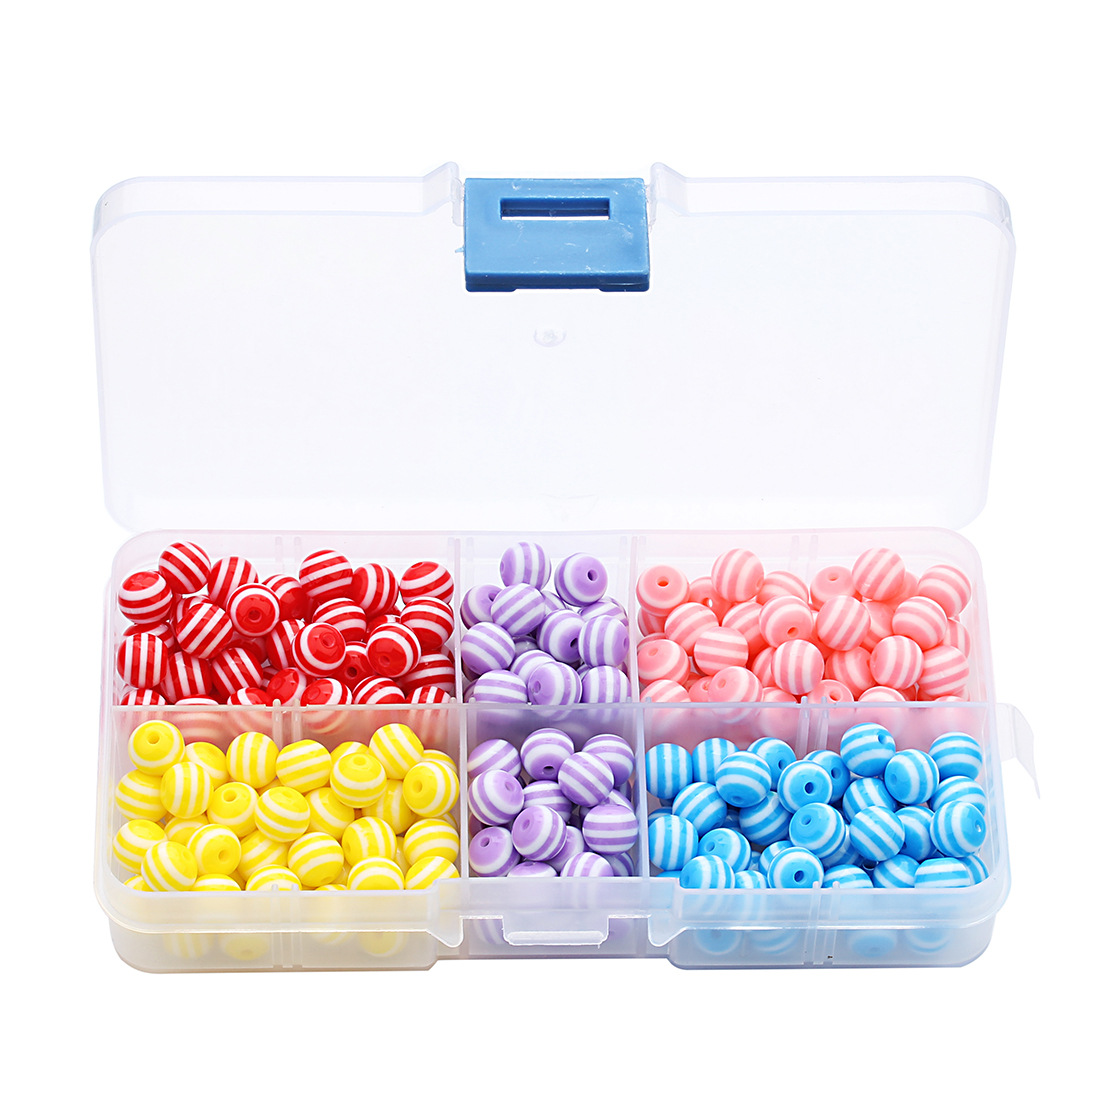 250PCs 8mm Candy Colors Resin Stripes Round Loose Beads DIY Components with Box 5 Colors Mixed